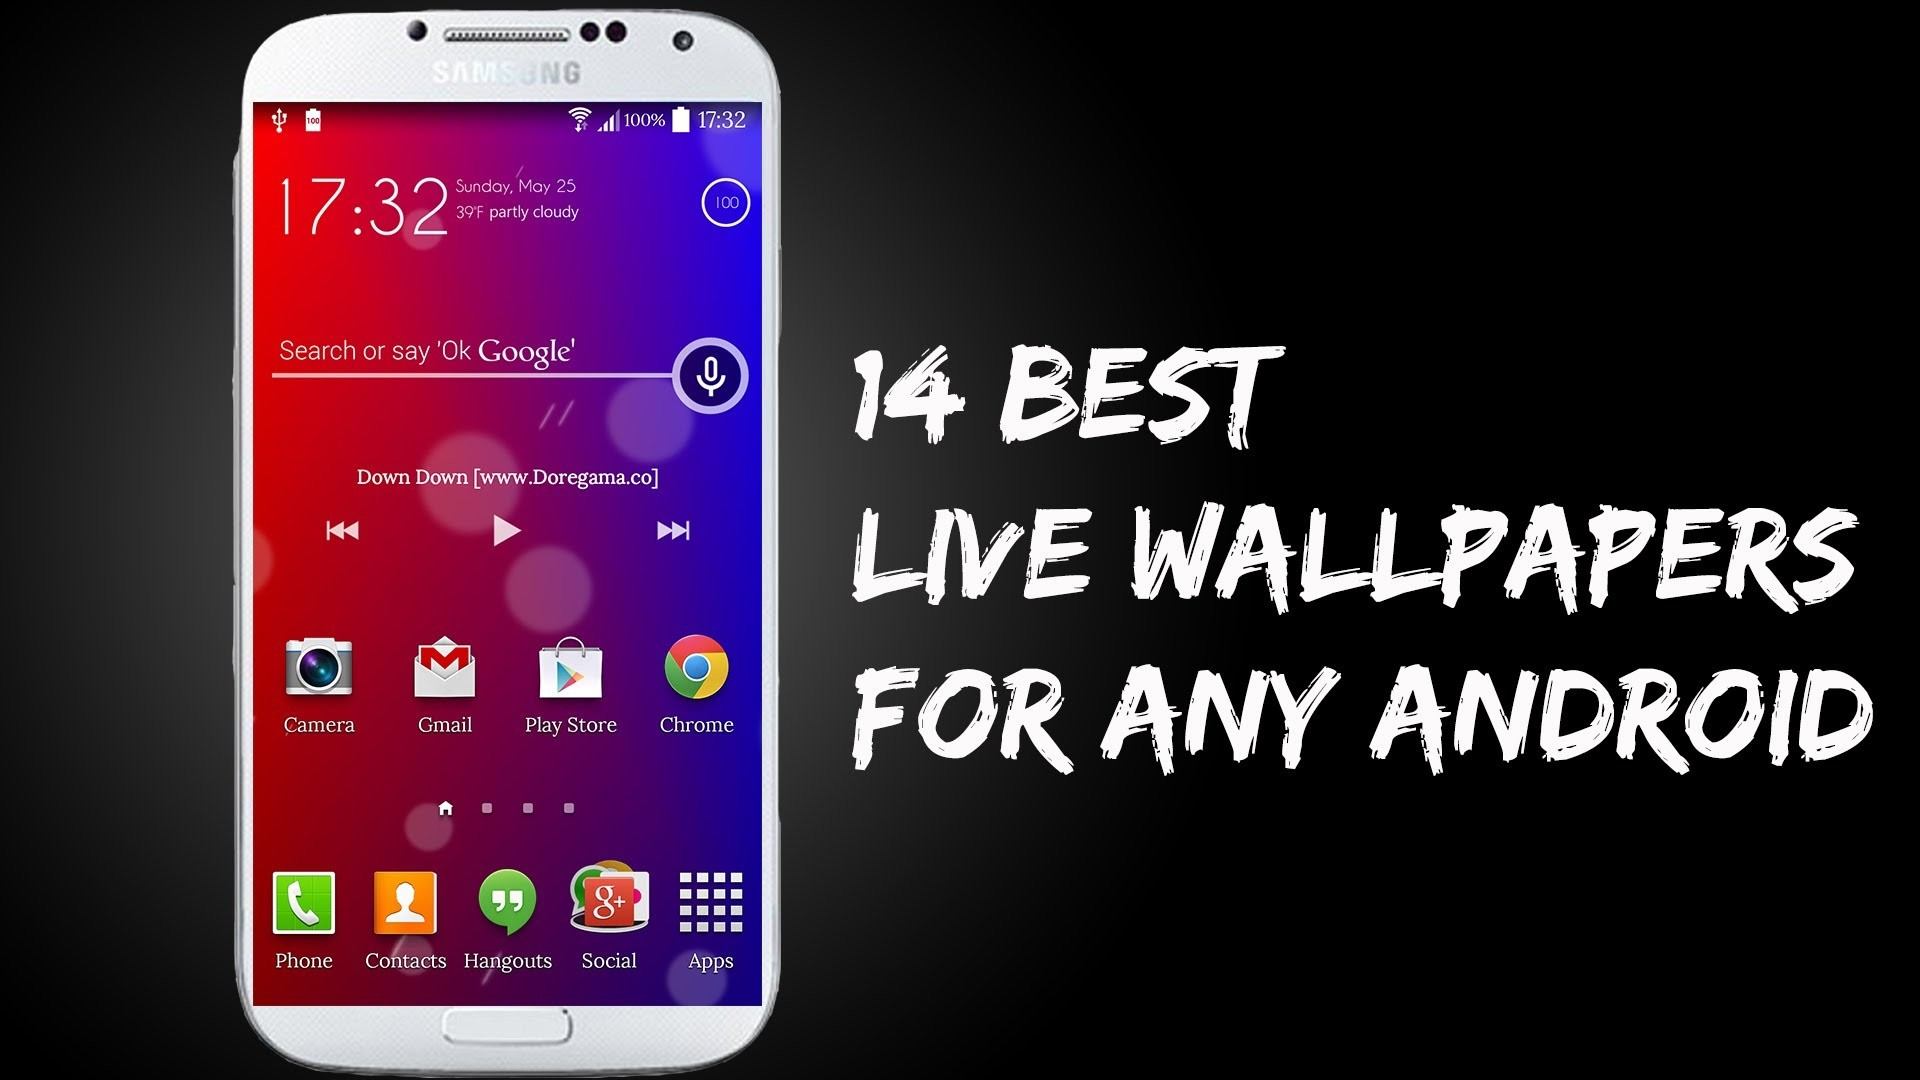 1920x1080 14 Best Live Wallpapers for any Android (Samsung galaxy s3,s4,s5,note3) -  YouTube